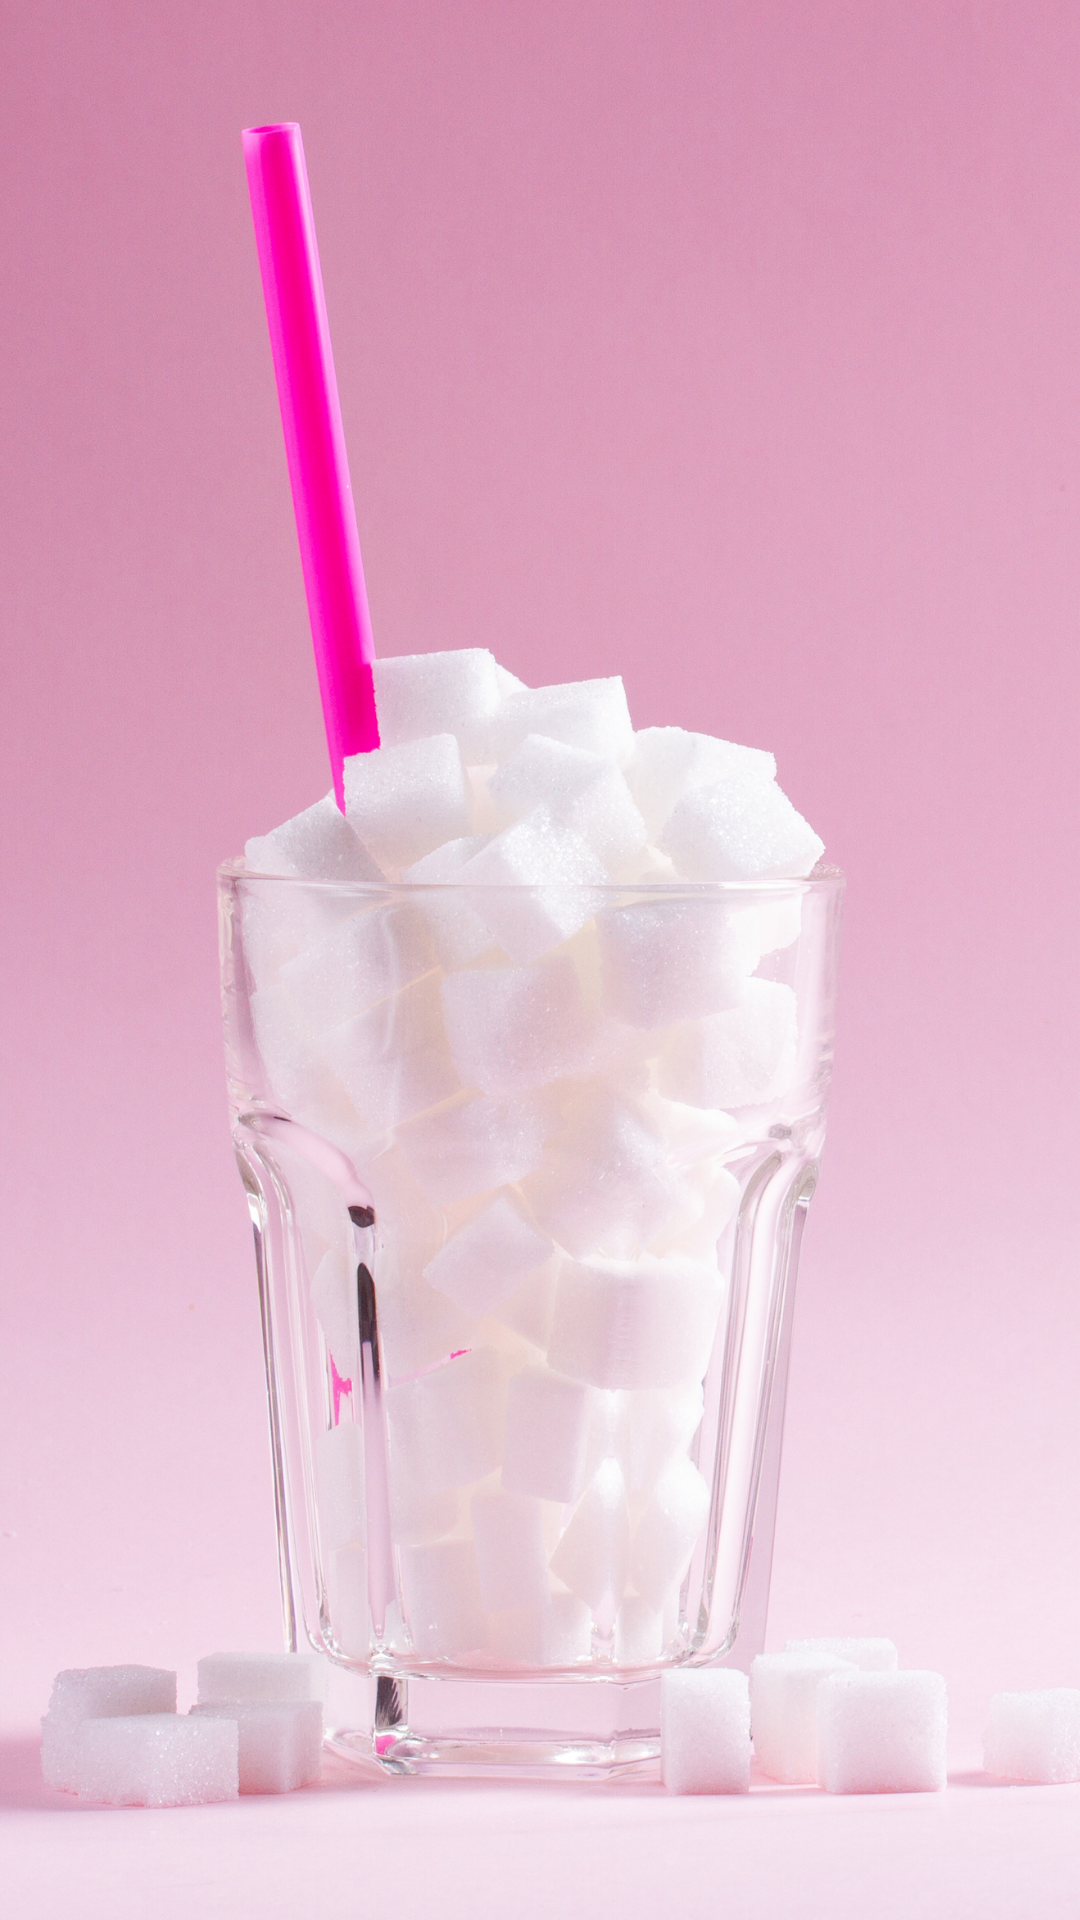 How Sugar Can Make Your Anxiety Worse